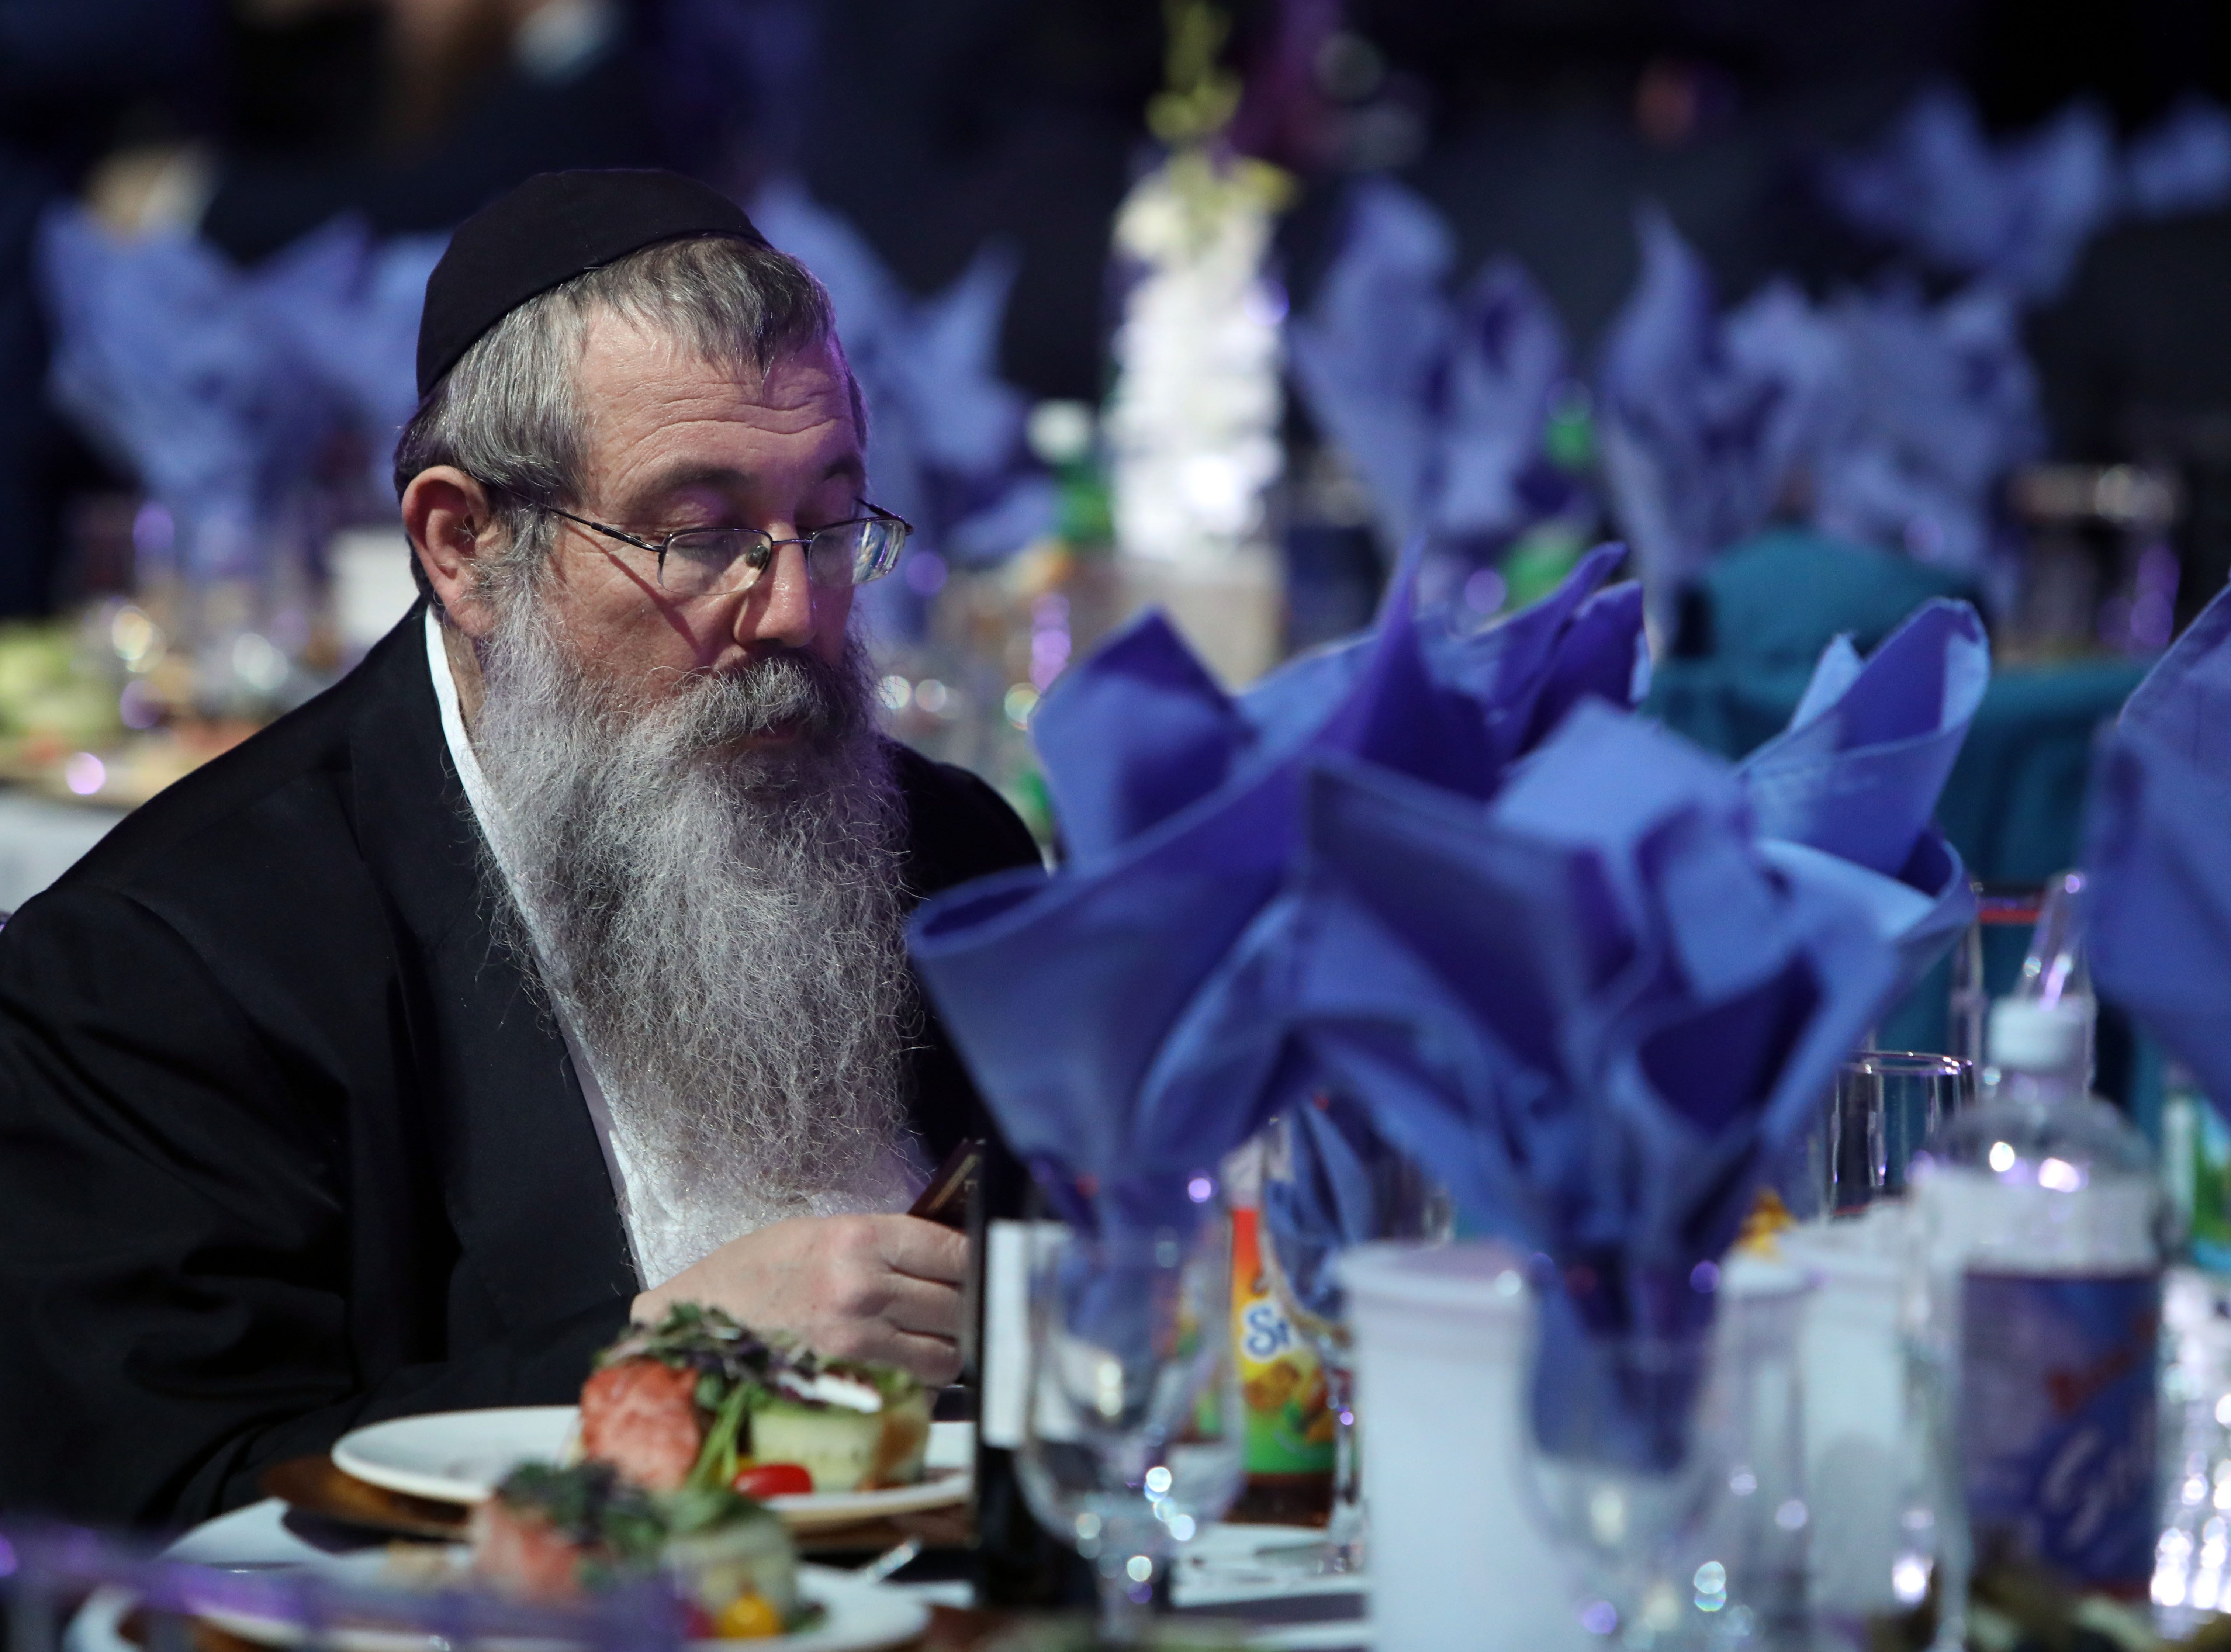 About 5,600 rabbis and their colleagues from 100 countries attend a gala at Rockland Community College Nov. 4, 1018 in Suffern as the culmination of an International Conference of Chabad-Lubavitch Emissaries in New York.